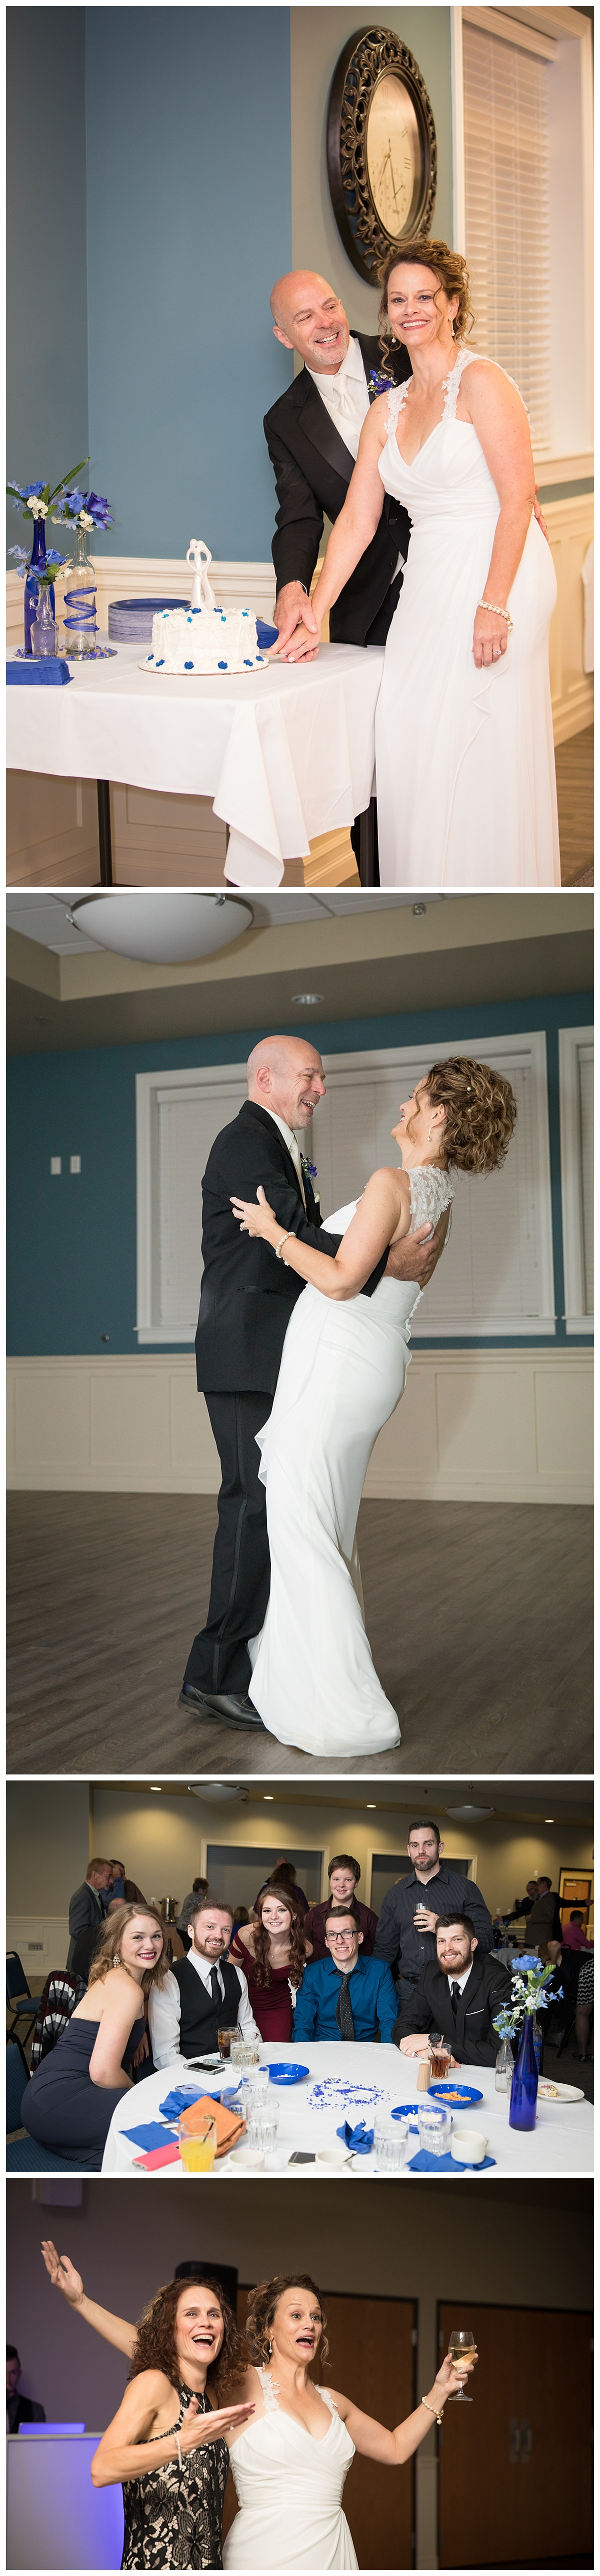 orion and oakland township wedding photography